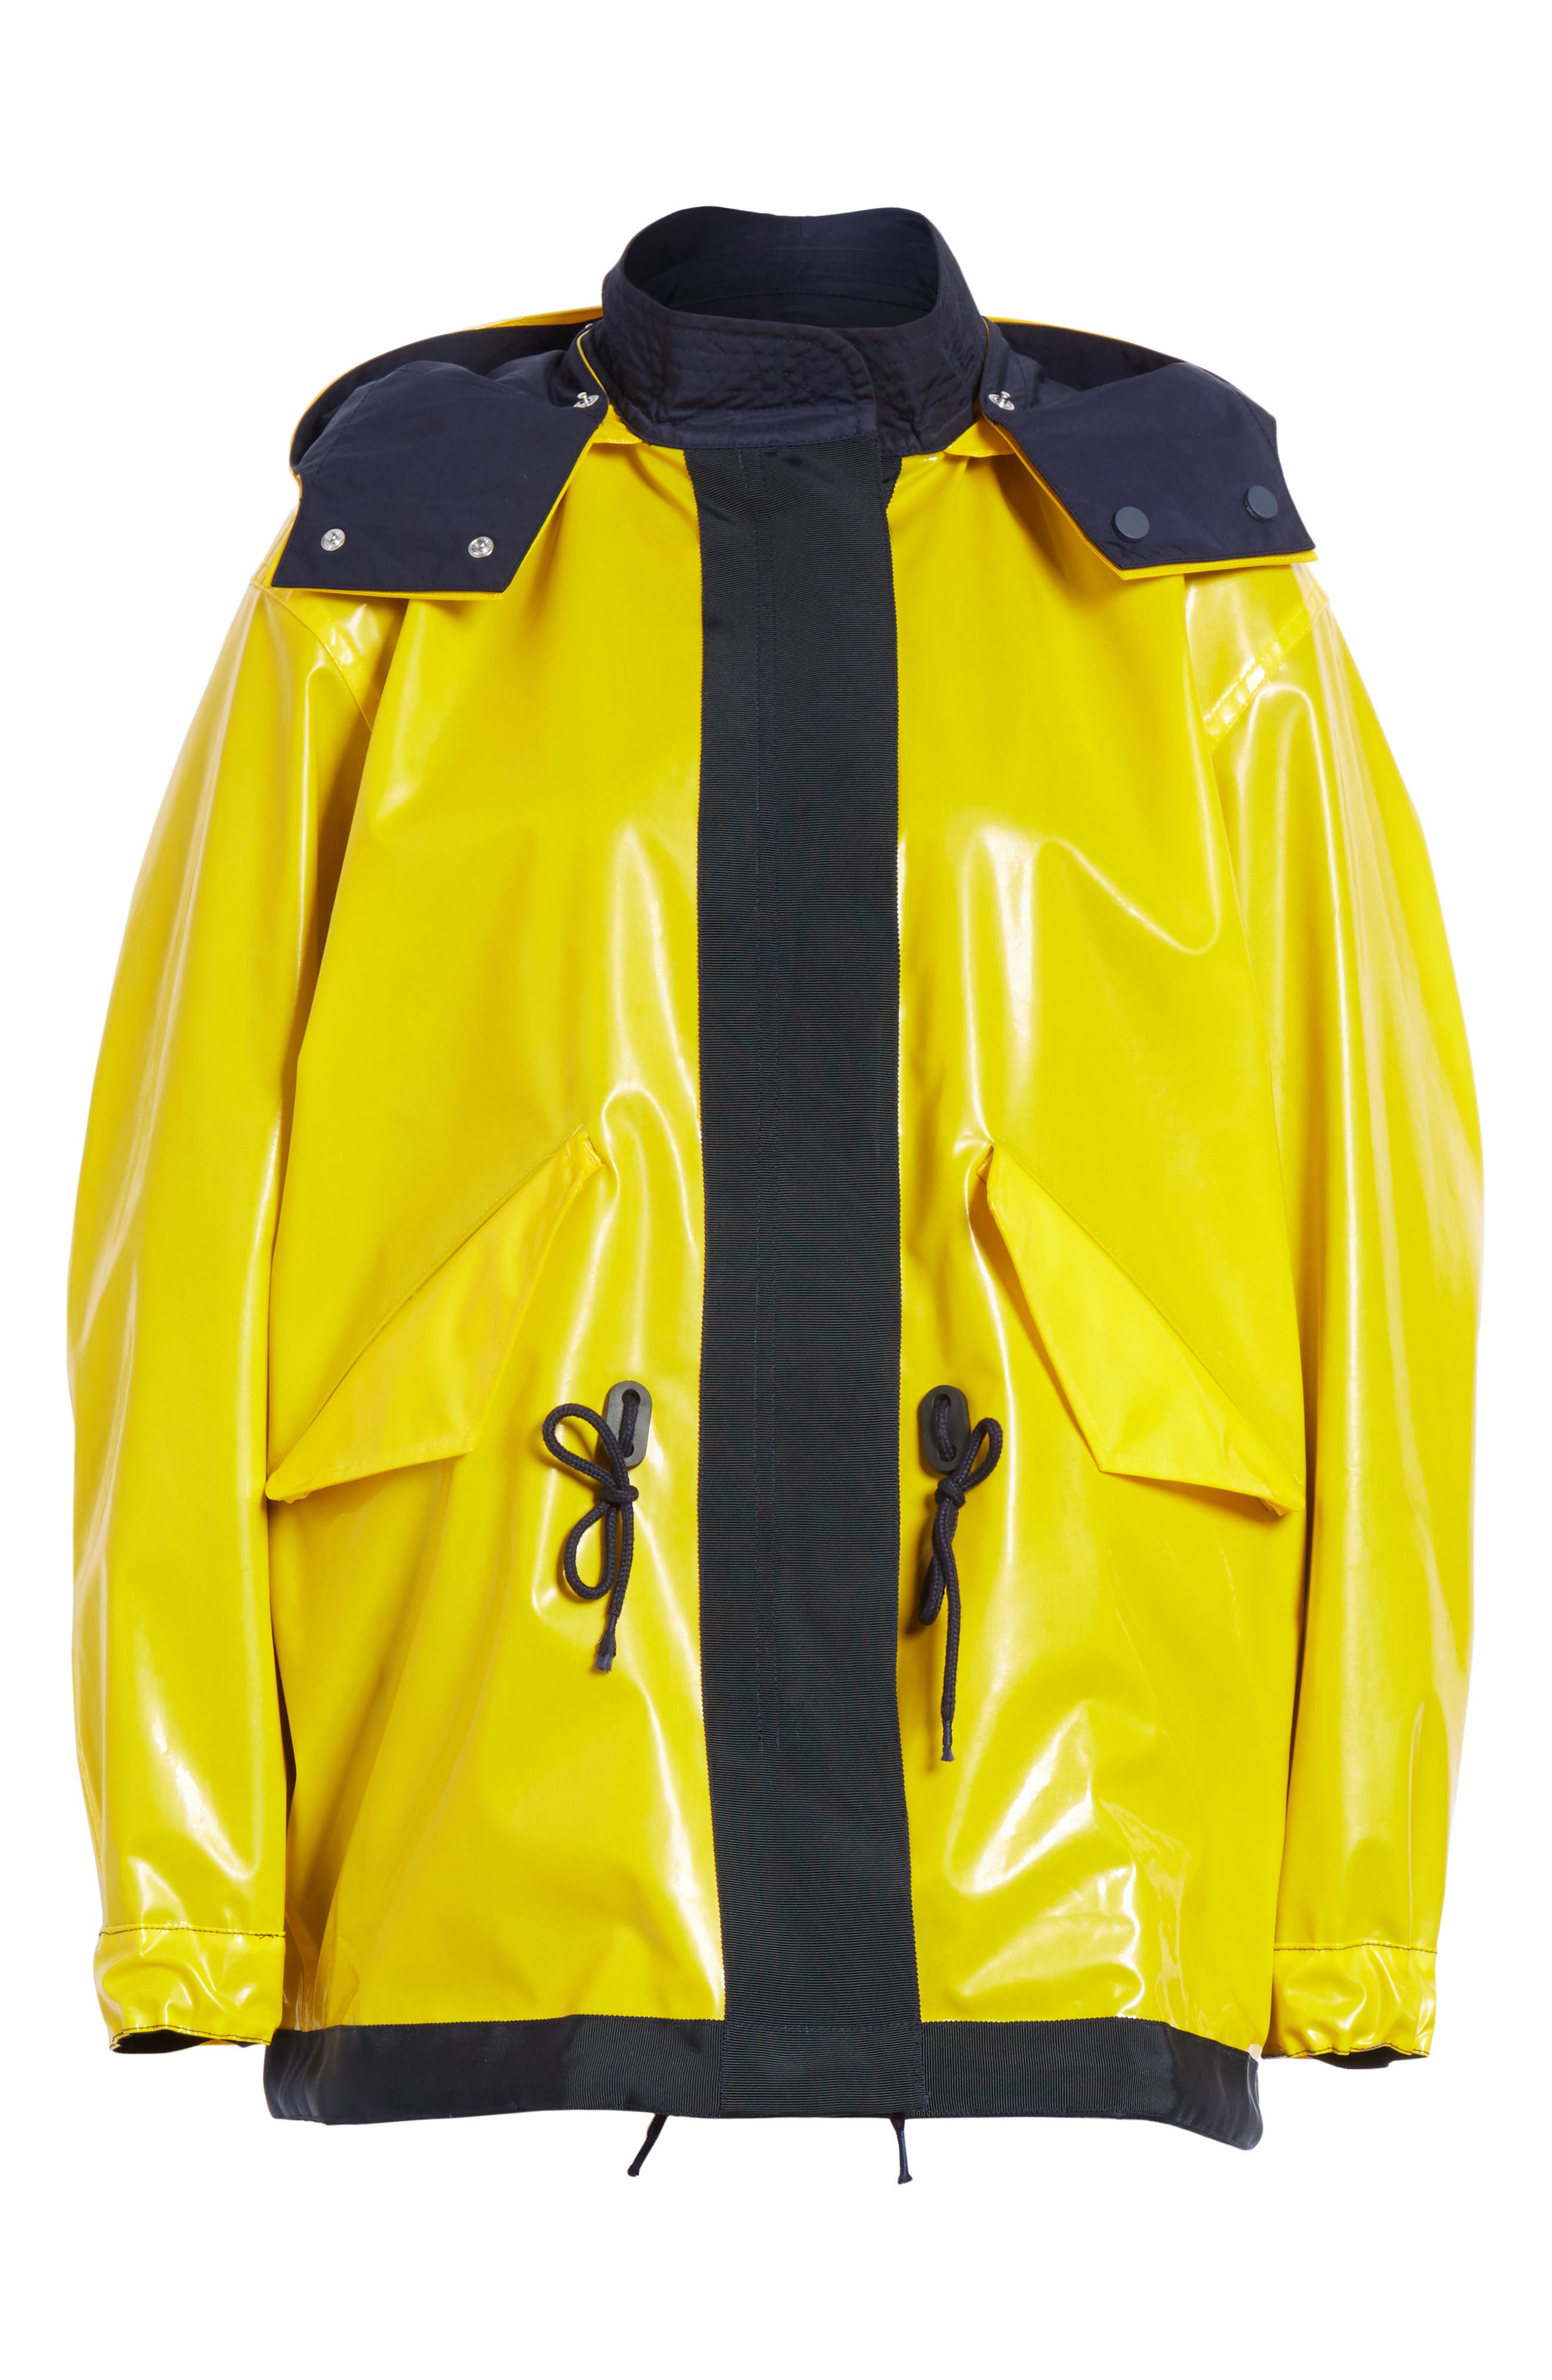 Reversible Rain Jacket,                             Alternate thumbnail 7, color,                             Tory Navy/ Cyber Yellow